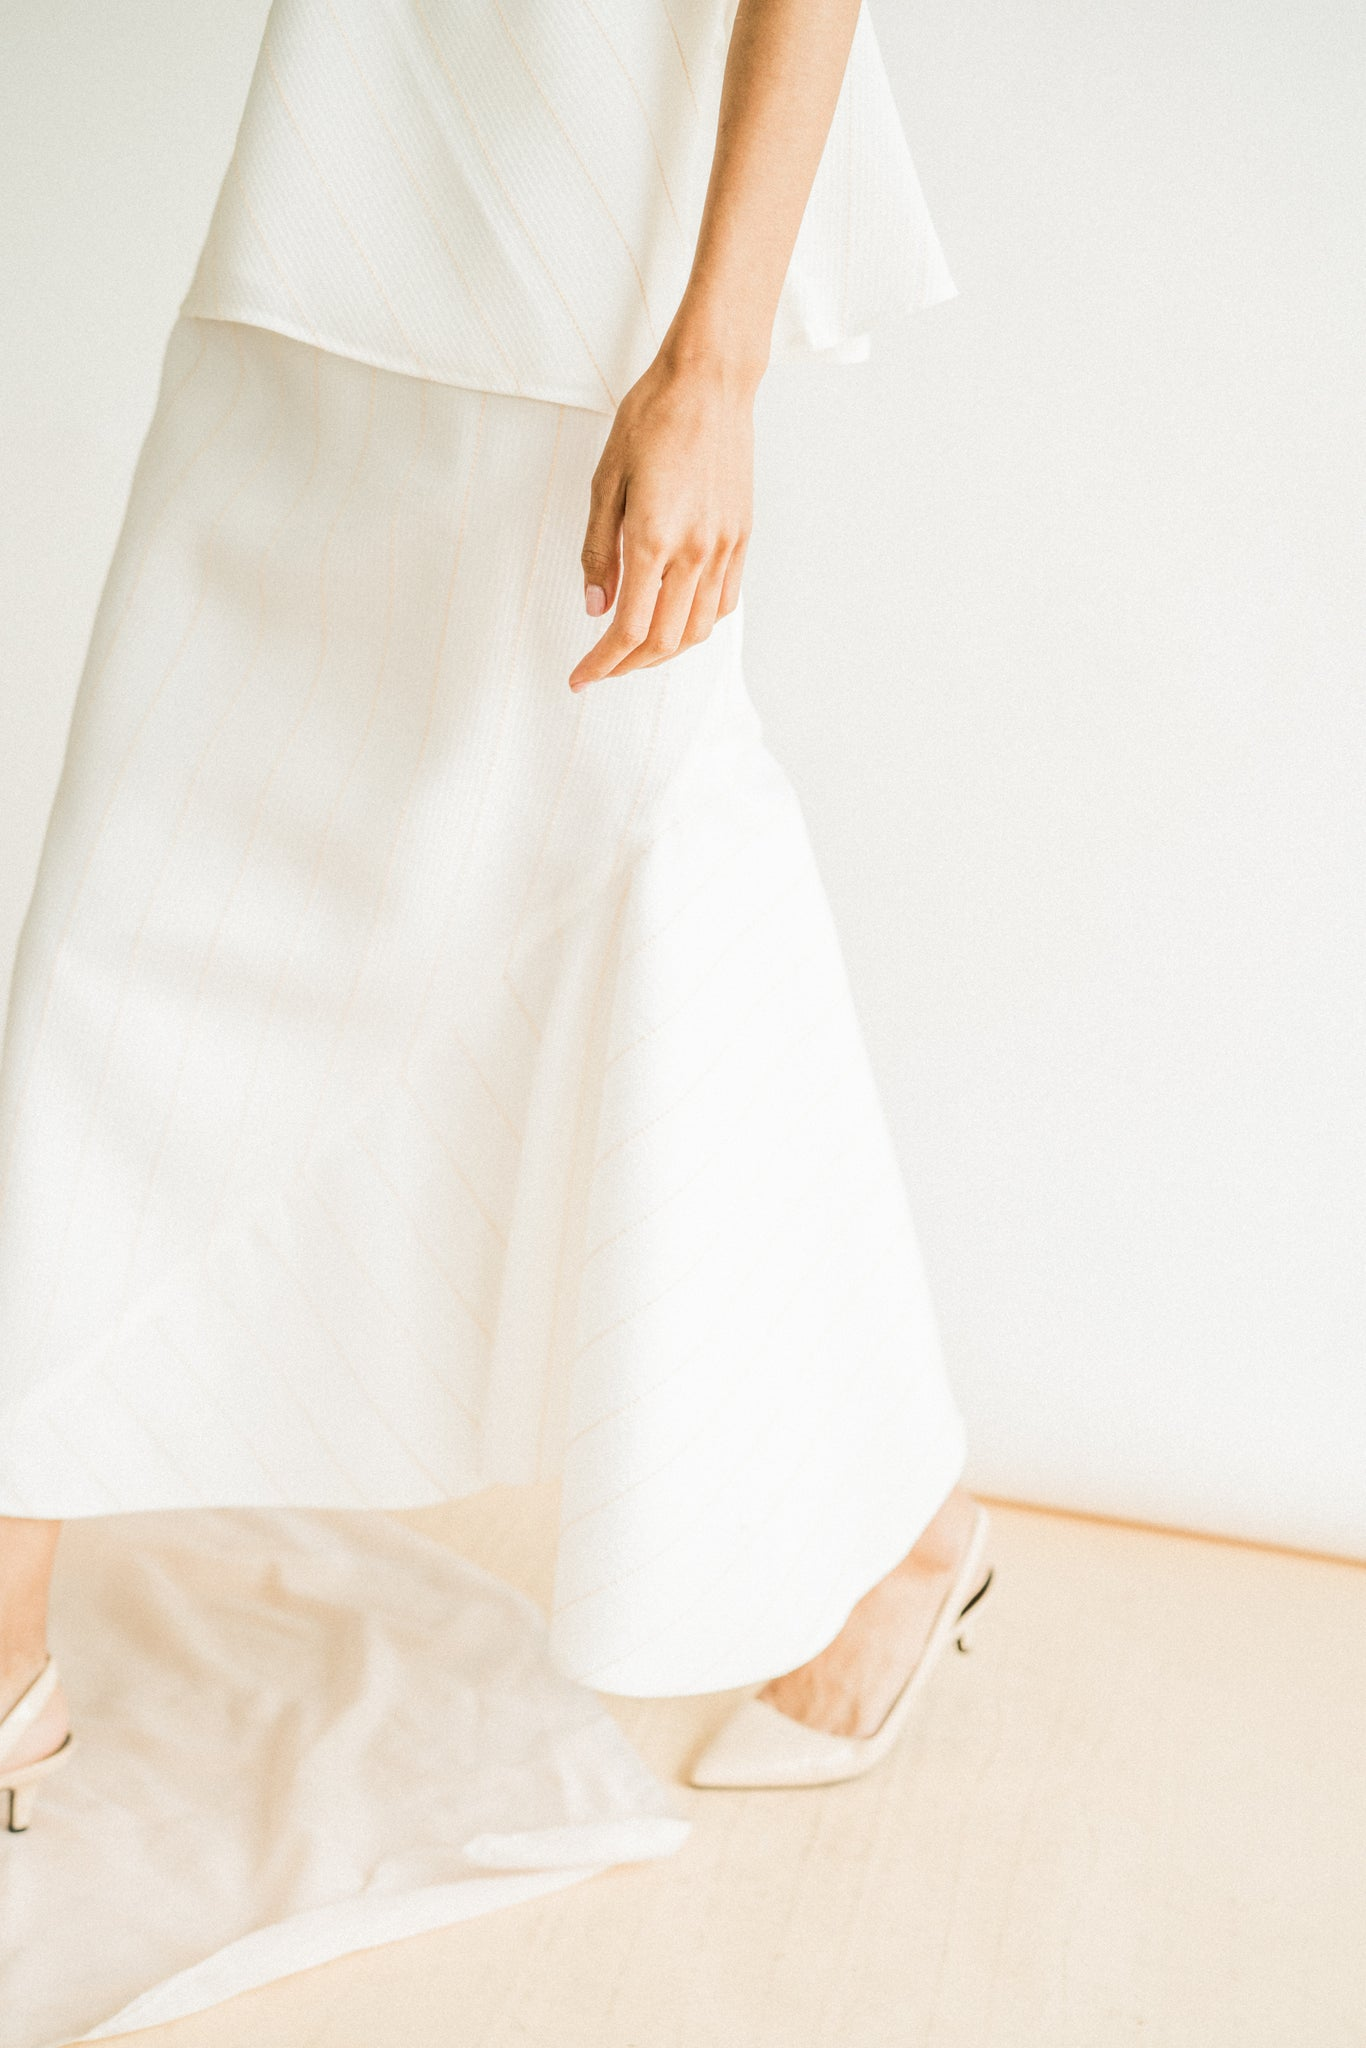 Lia Skirt in White Peach